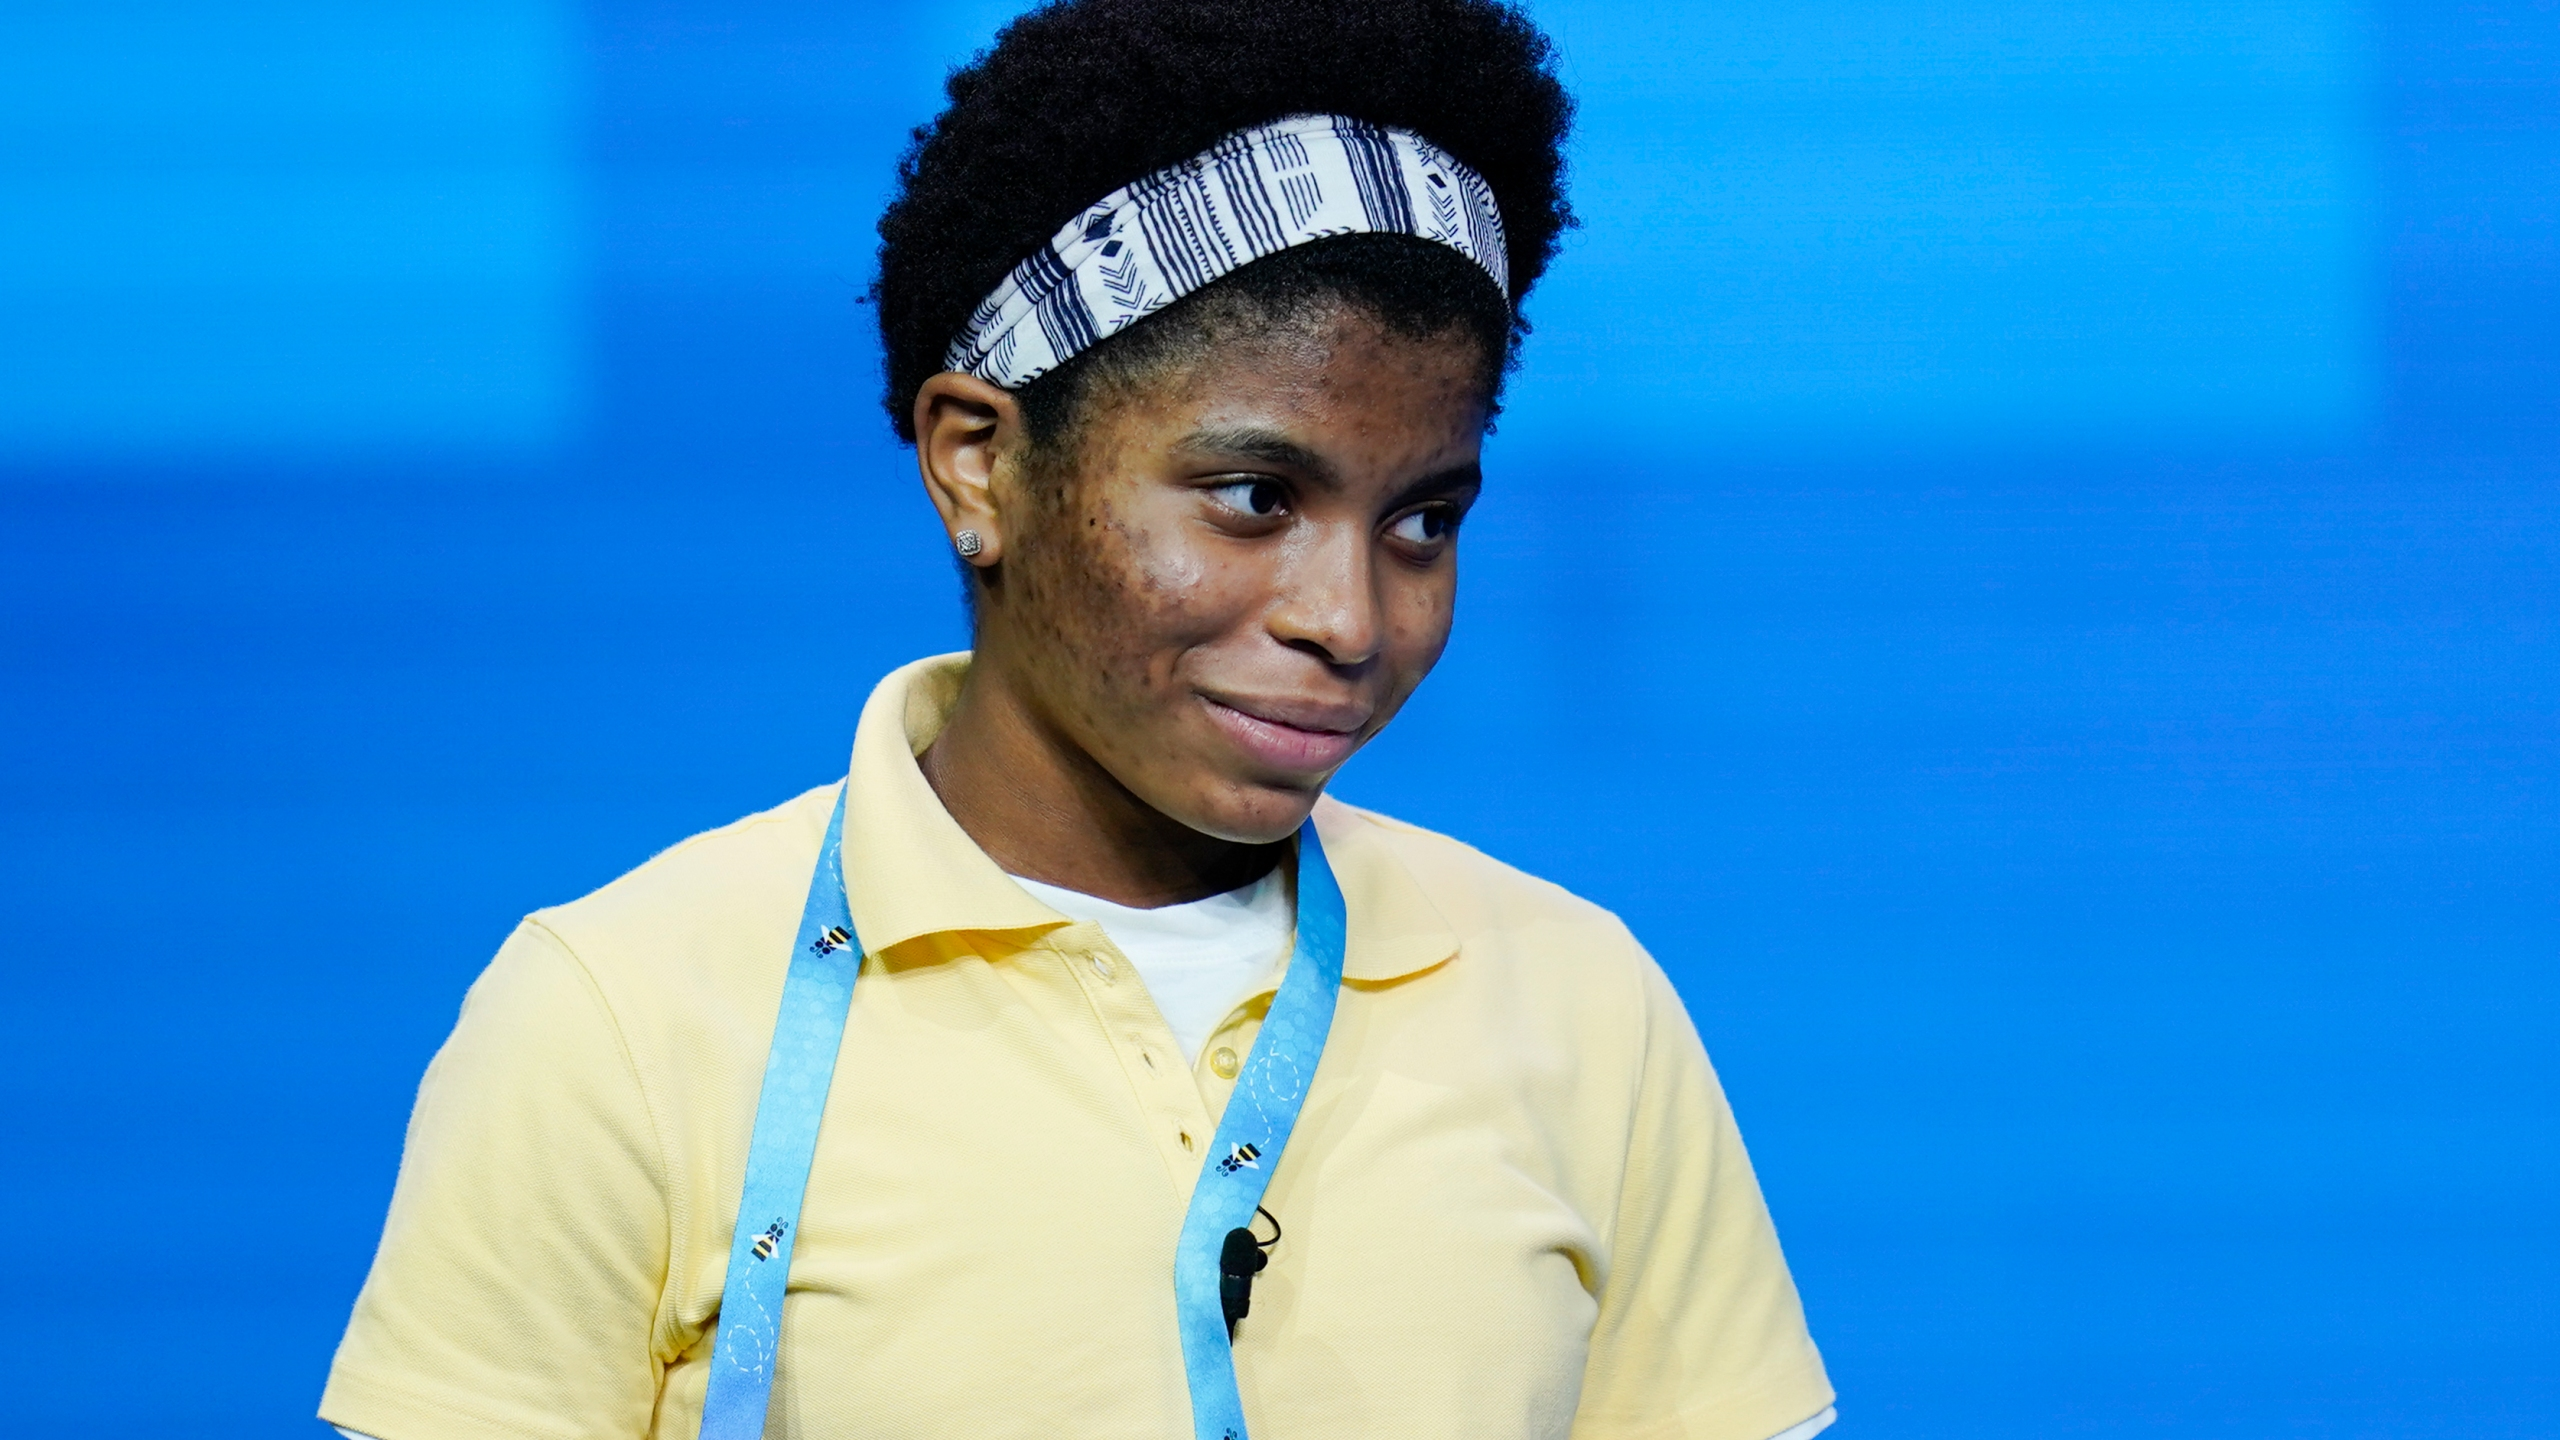 Zaila Avant-garde, 14, from Harvey, Louisiana reacts after correctly spelling a word during the finals of the 2021 Scripps National Spelling Bee at Disney World on July 8, 2021, in Lake Buena Vista, Fla. (AP Photo/John Raoux)